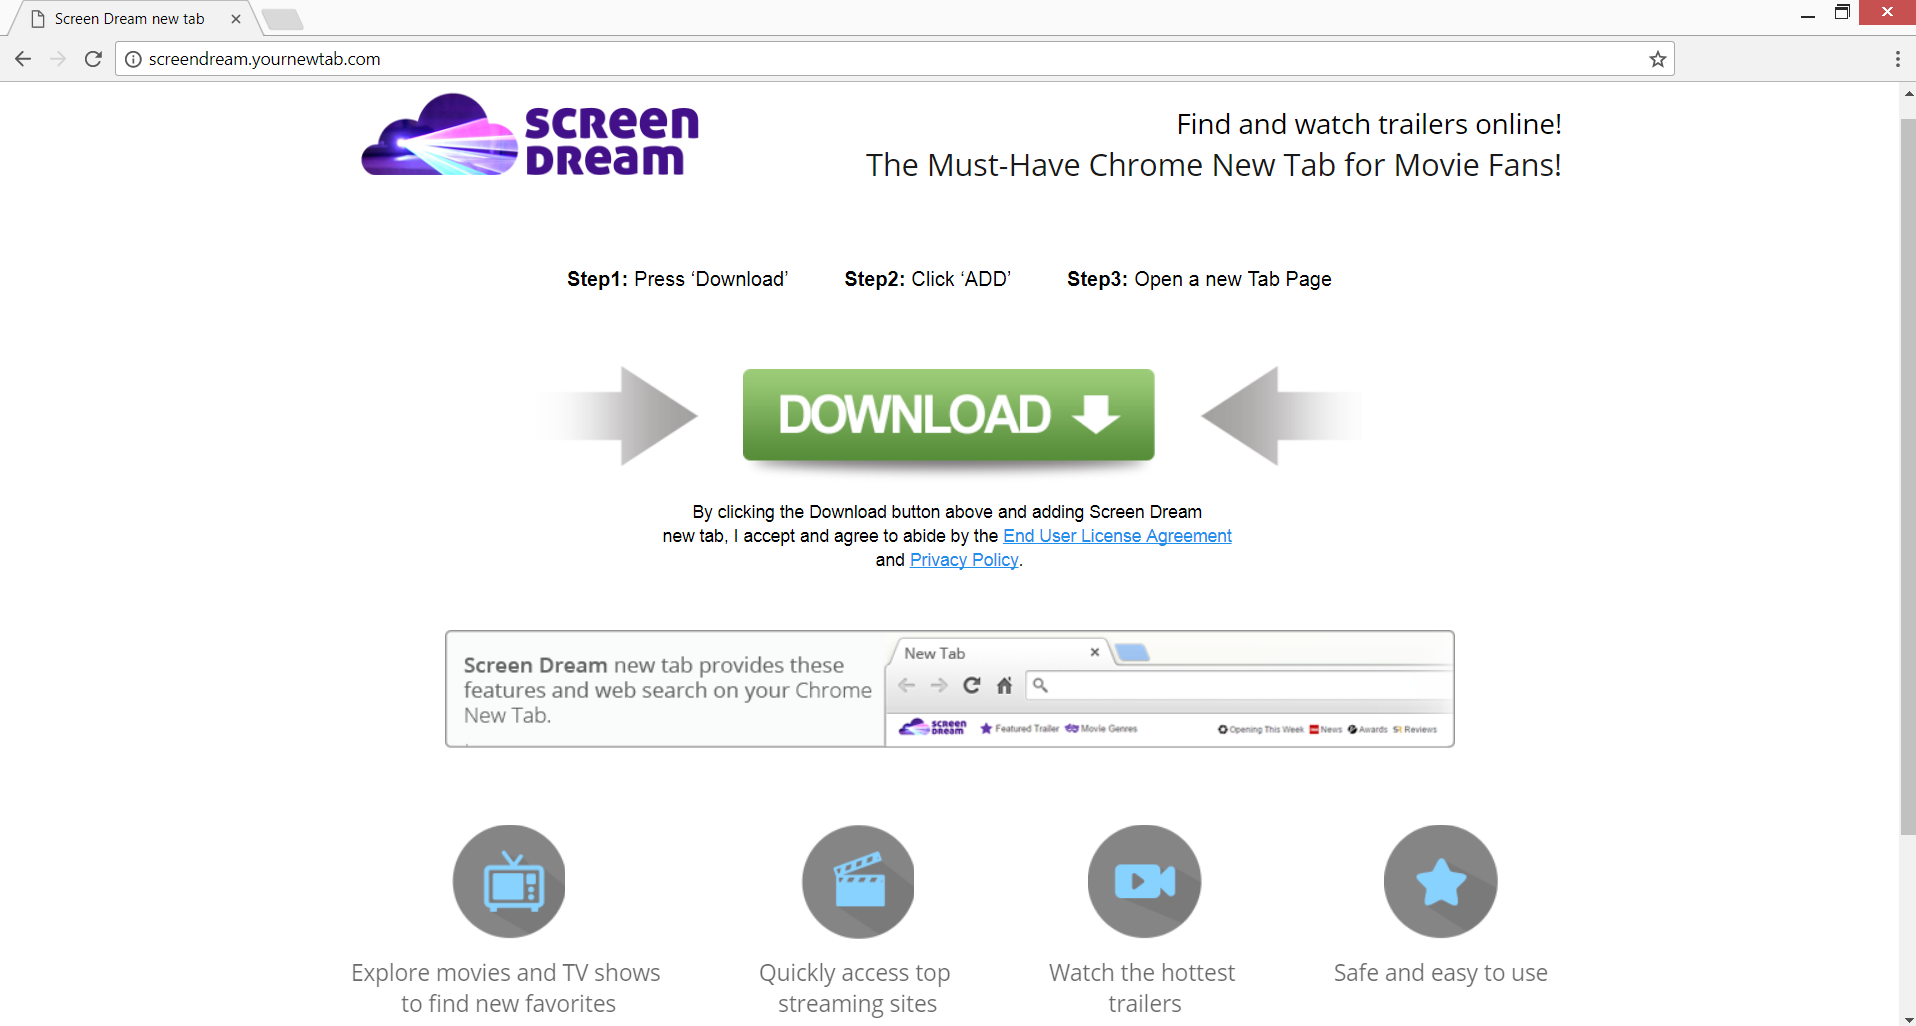 Screendream.yournewtab.com redirect homepage stf